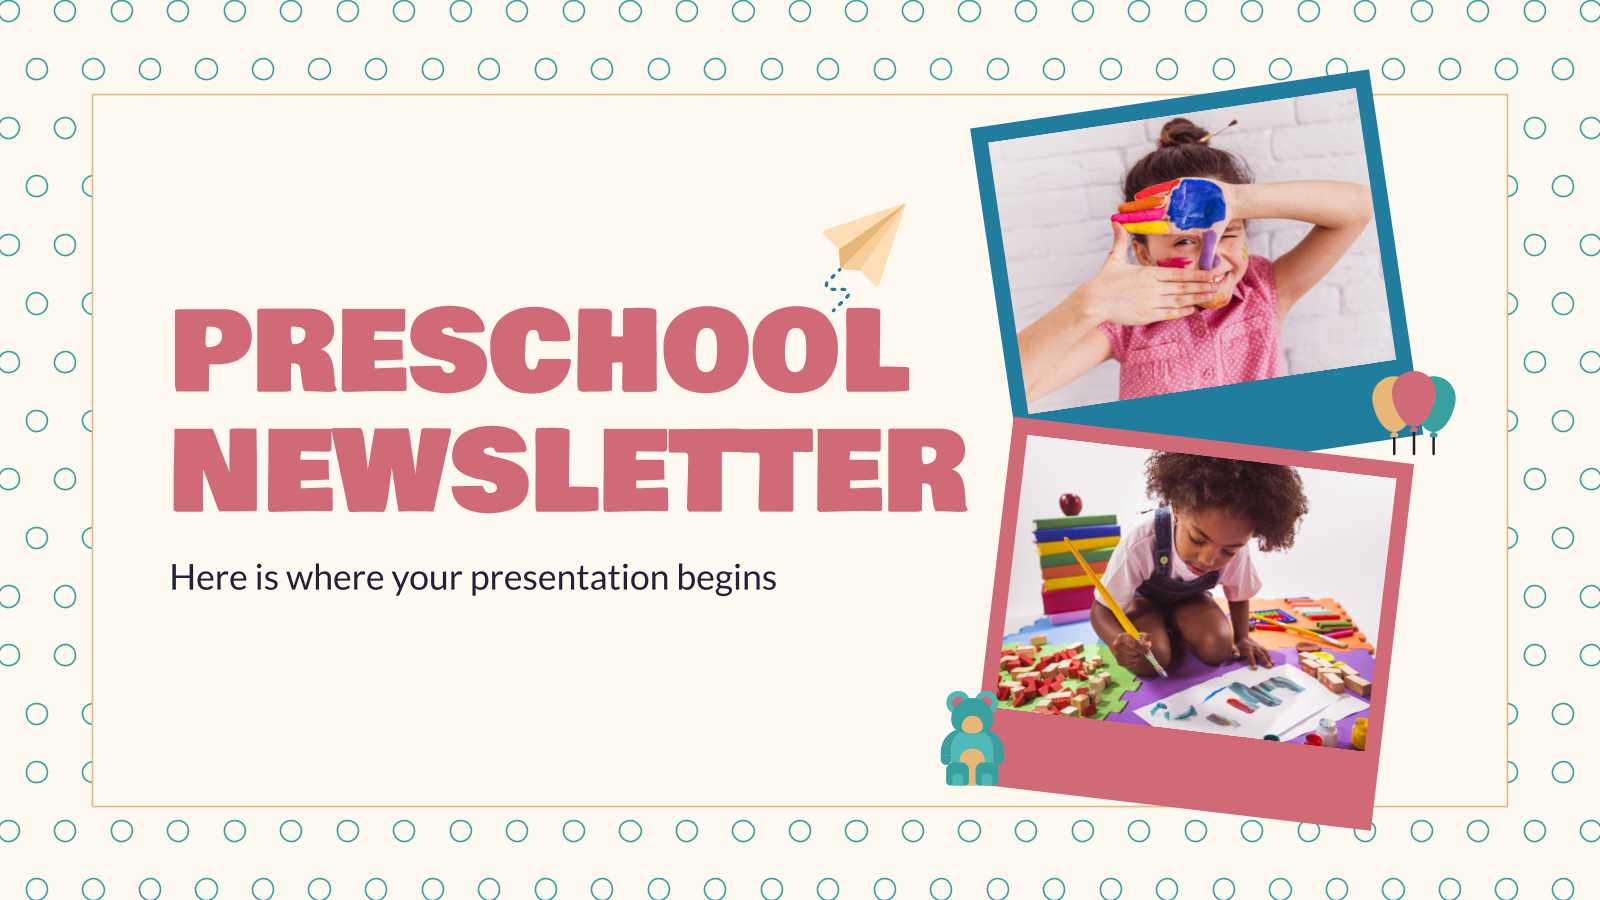 Preschool Newsletter presentation template